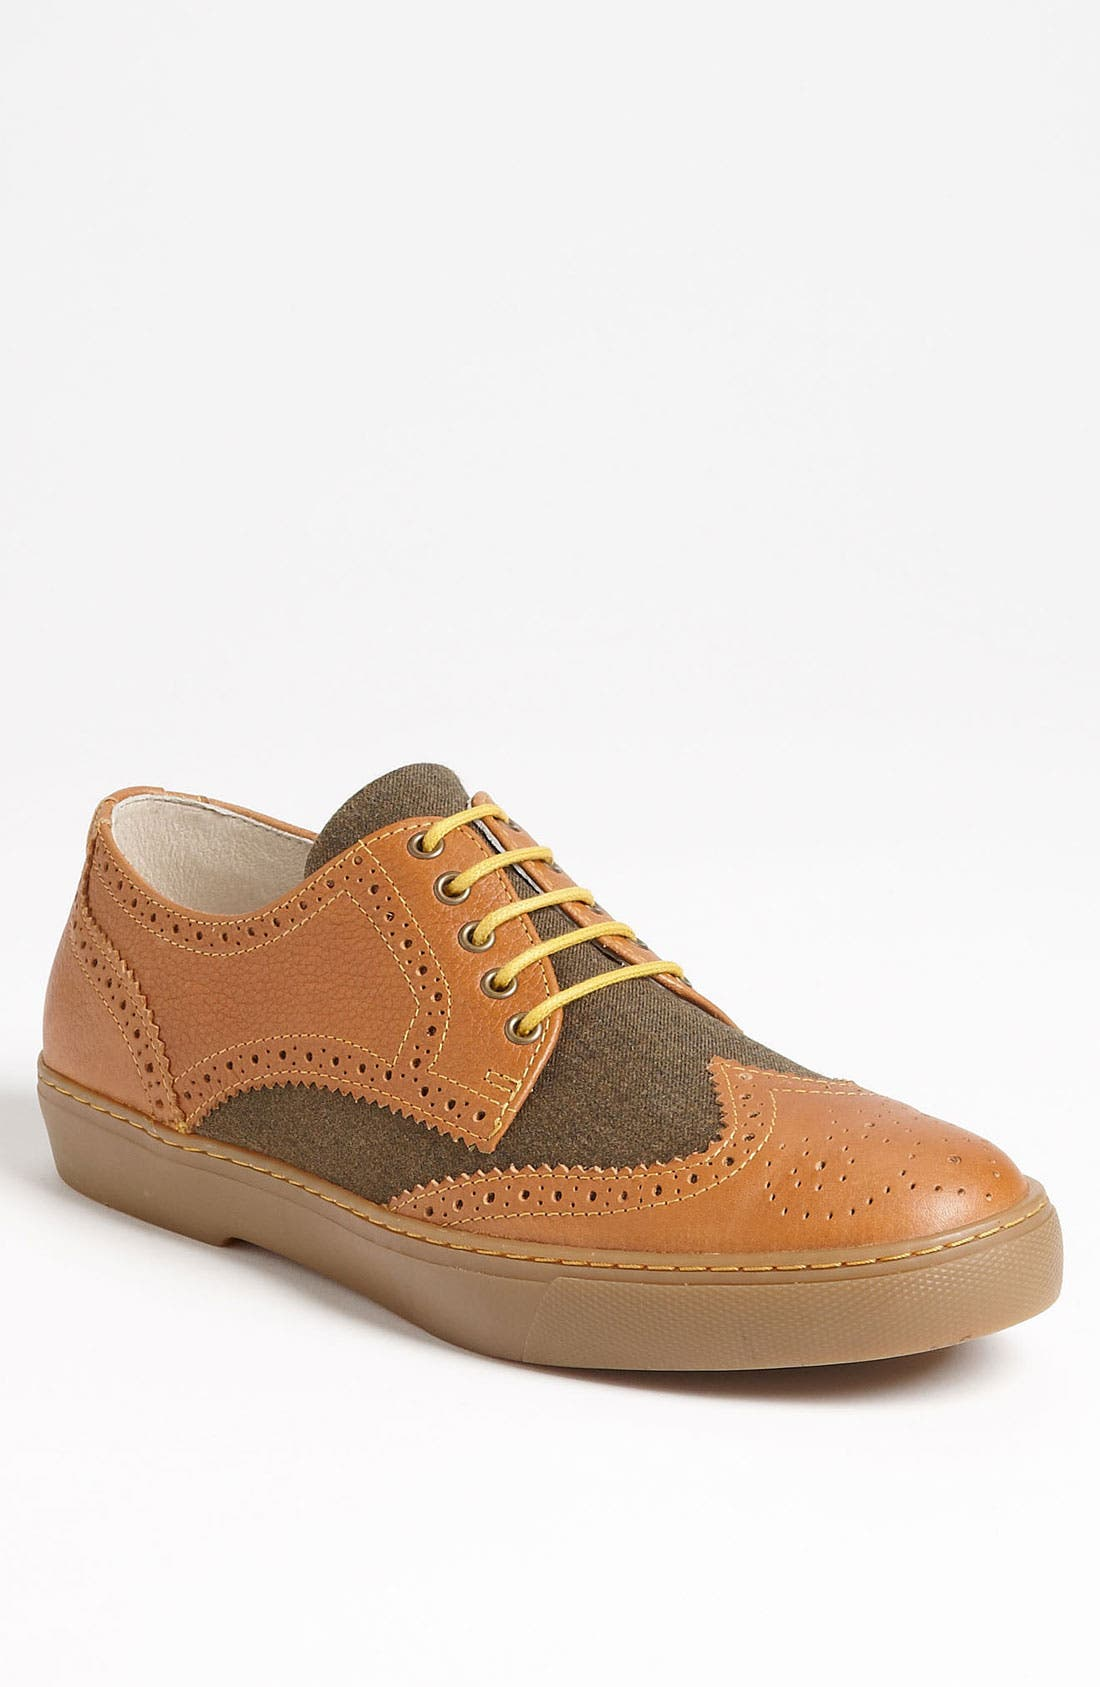 Main Image - Fred Perry 'Donegan' Wingtip